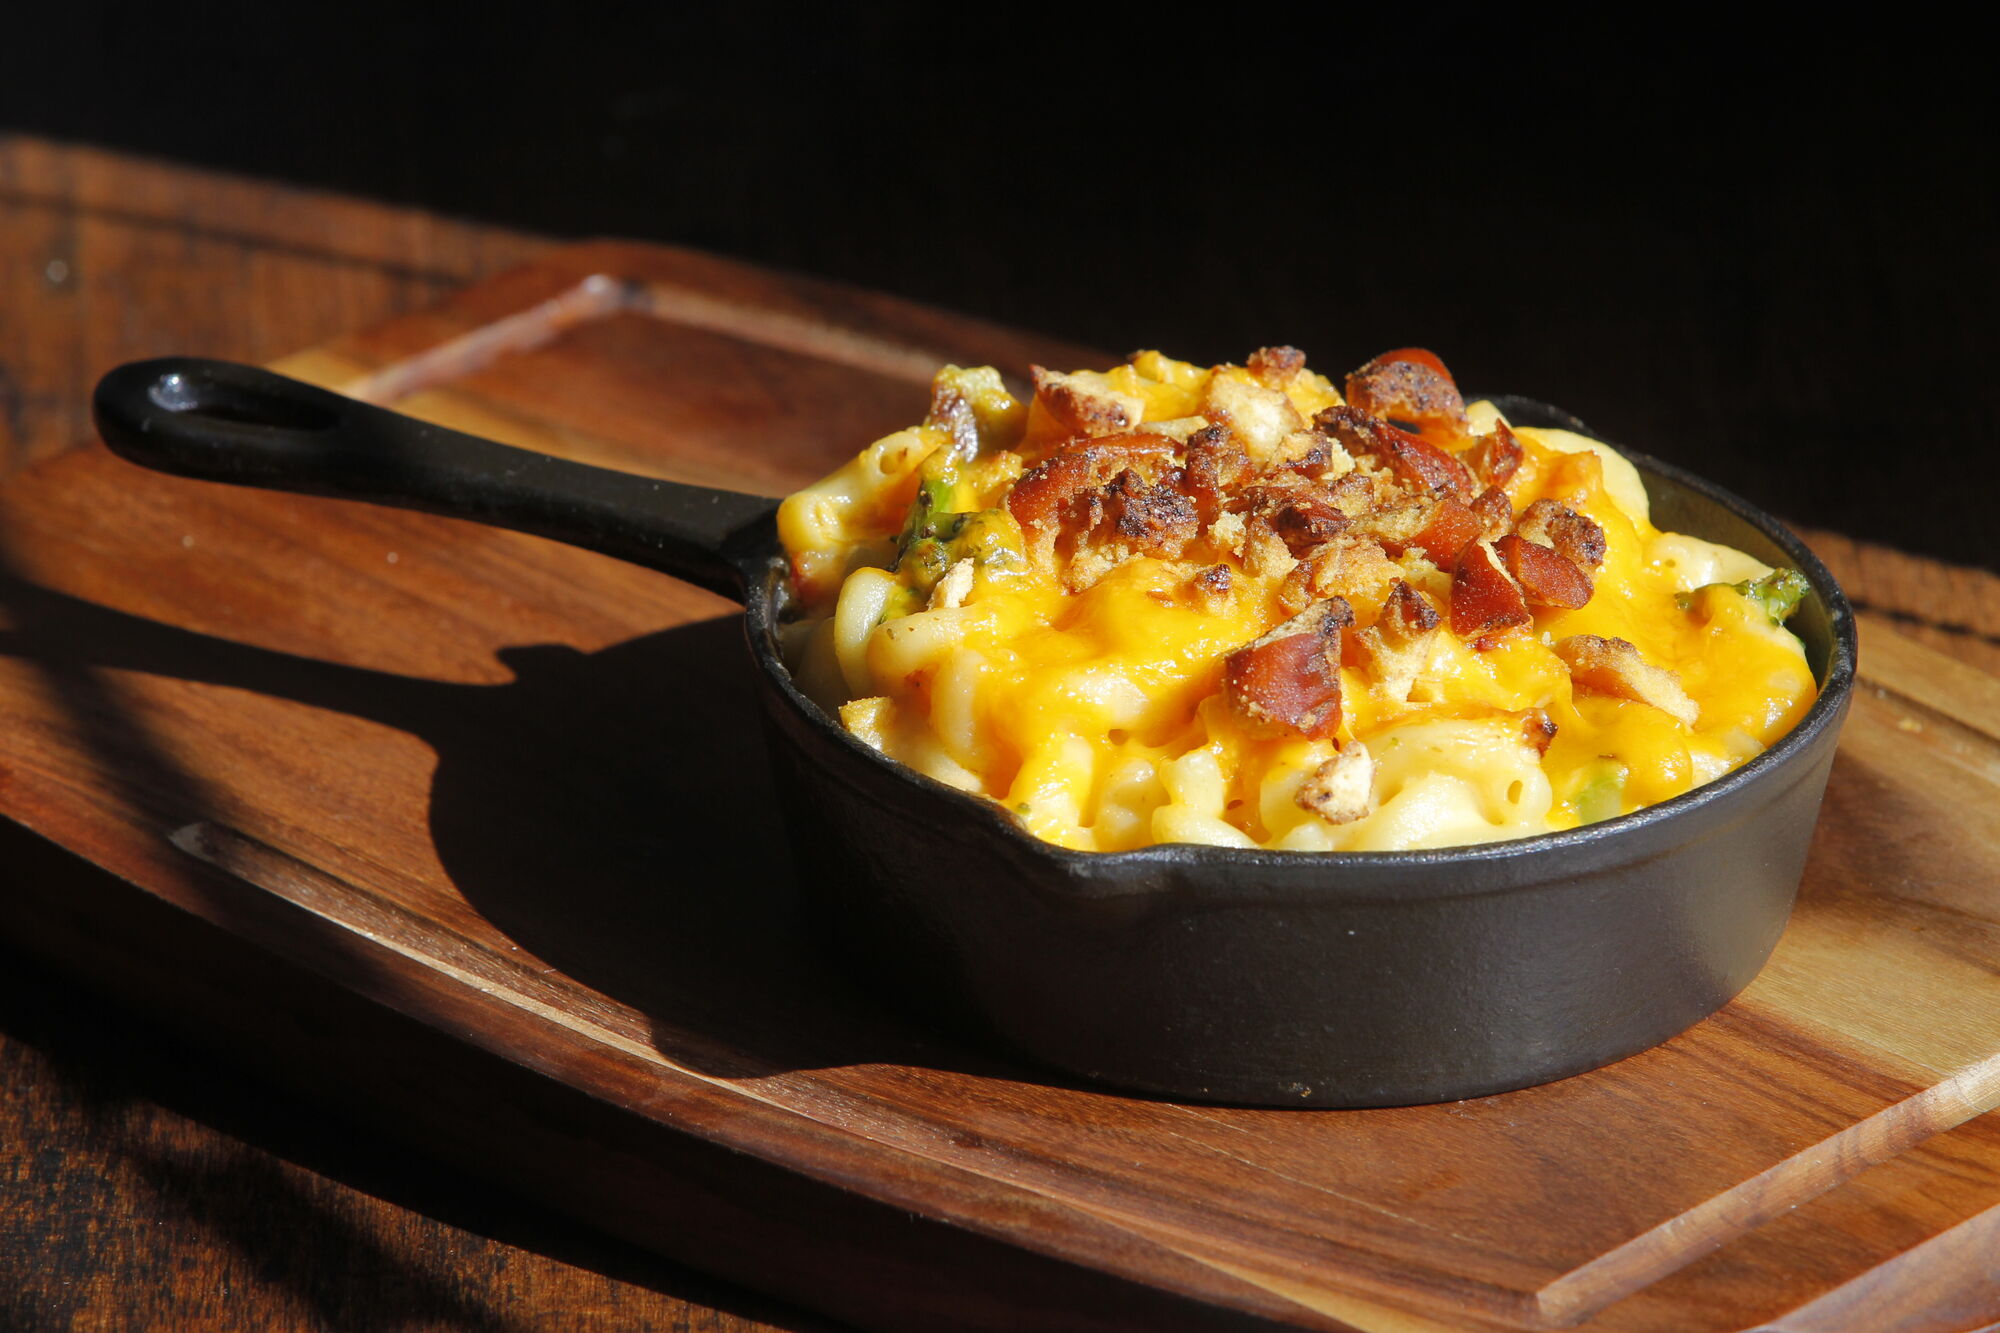 Mac 'n' cheese at Marion Street Eatery